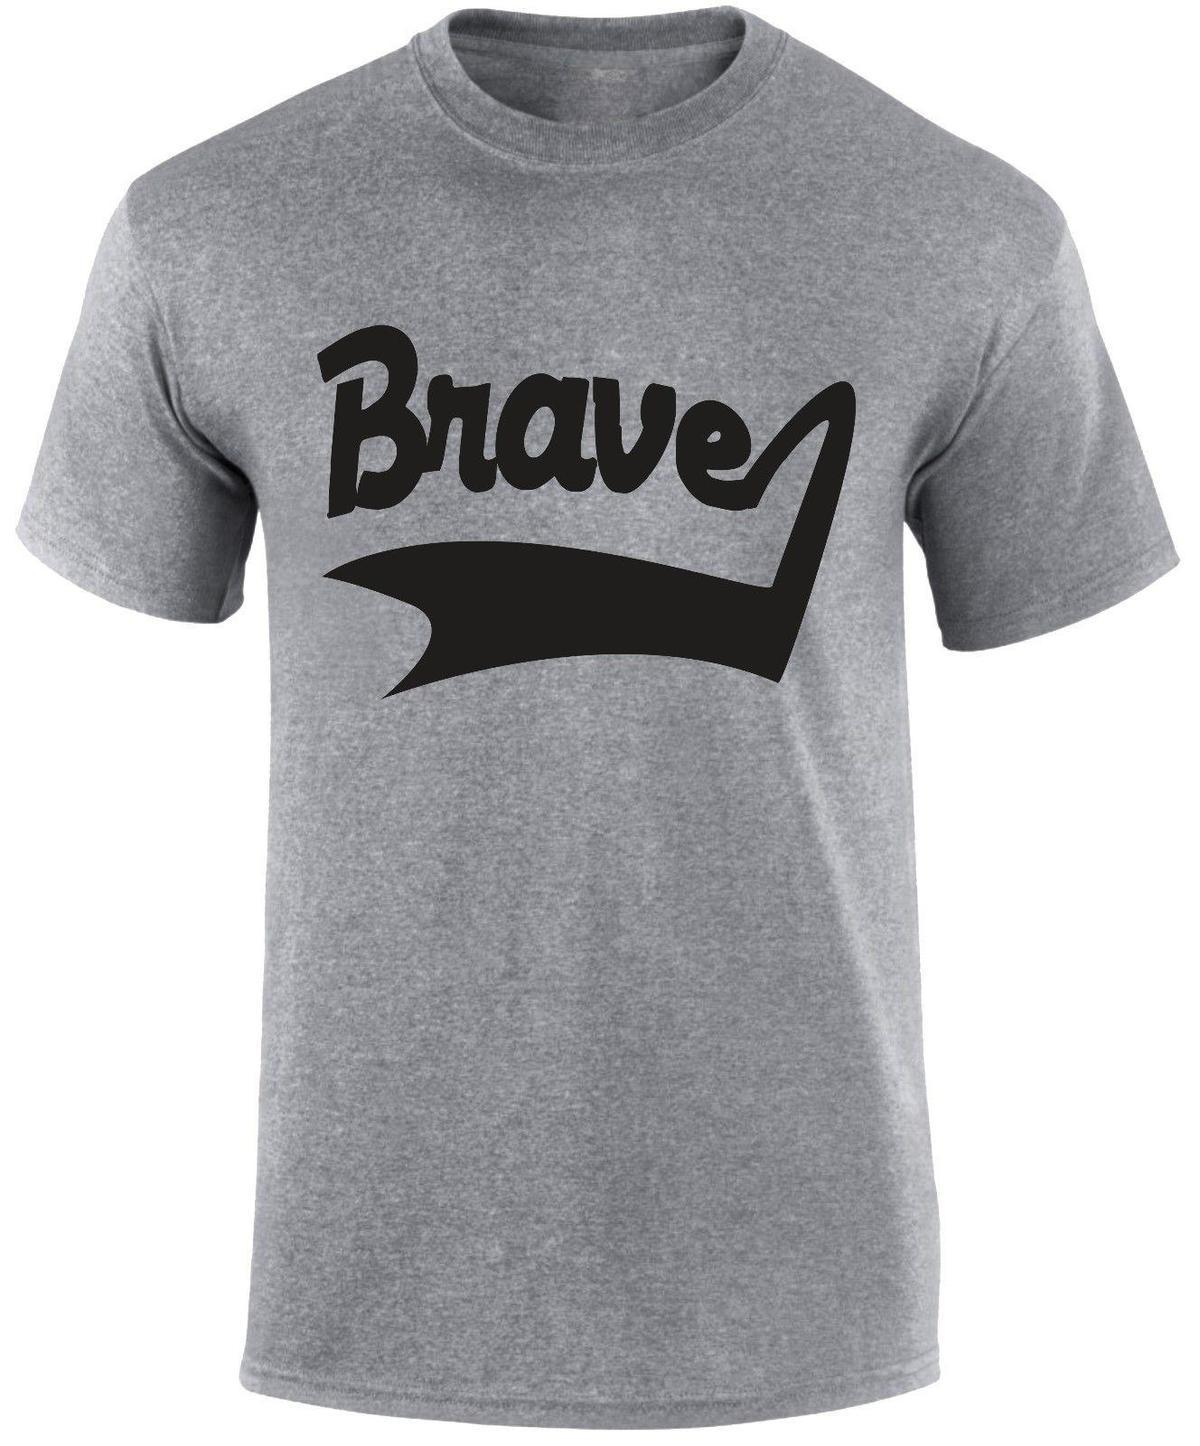 2f5cd6c97a72 Brave Label Motivational Positive Thinking Theraphy Sports Game Gym T Shirt  White T Shirts With Designs Cloth T Shirt From Jie42, $14.67| DHgate.Com